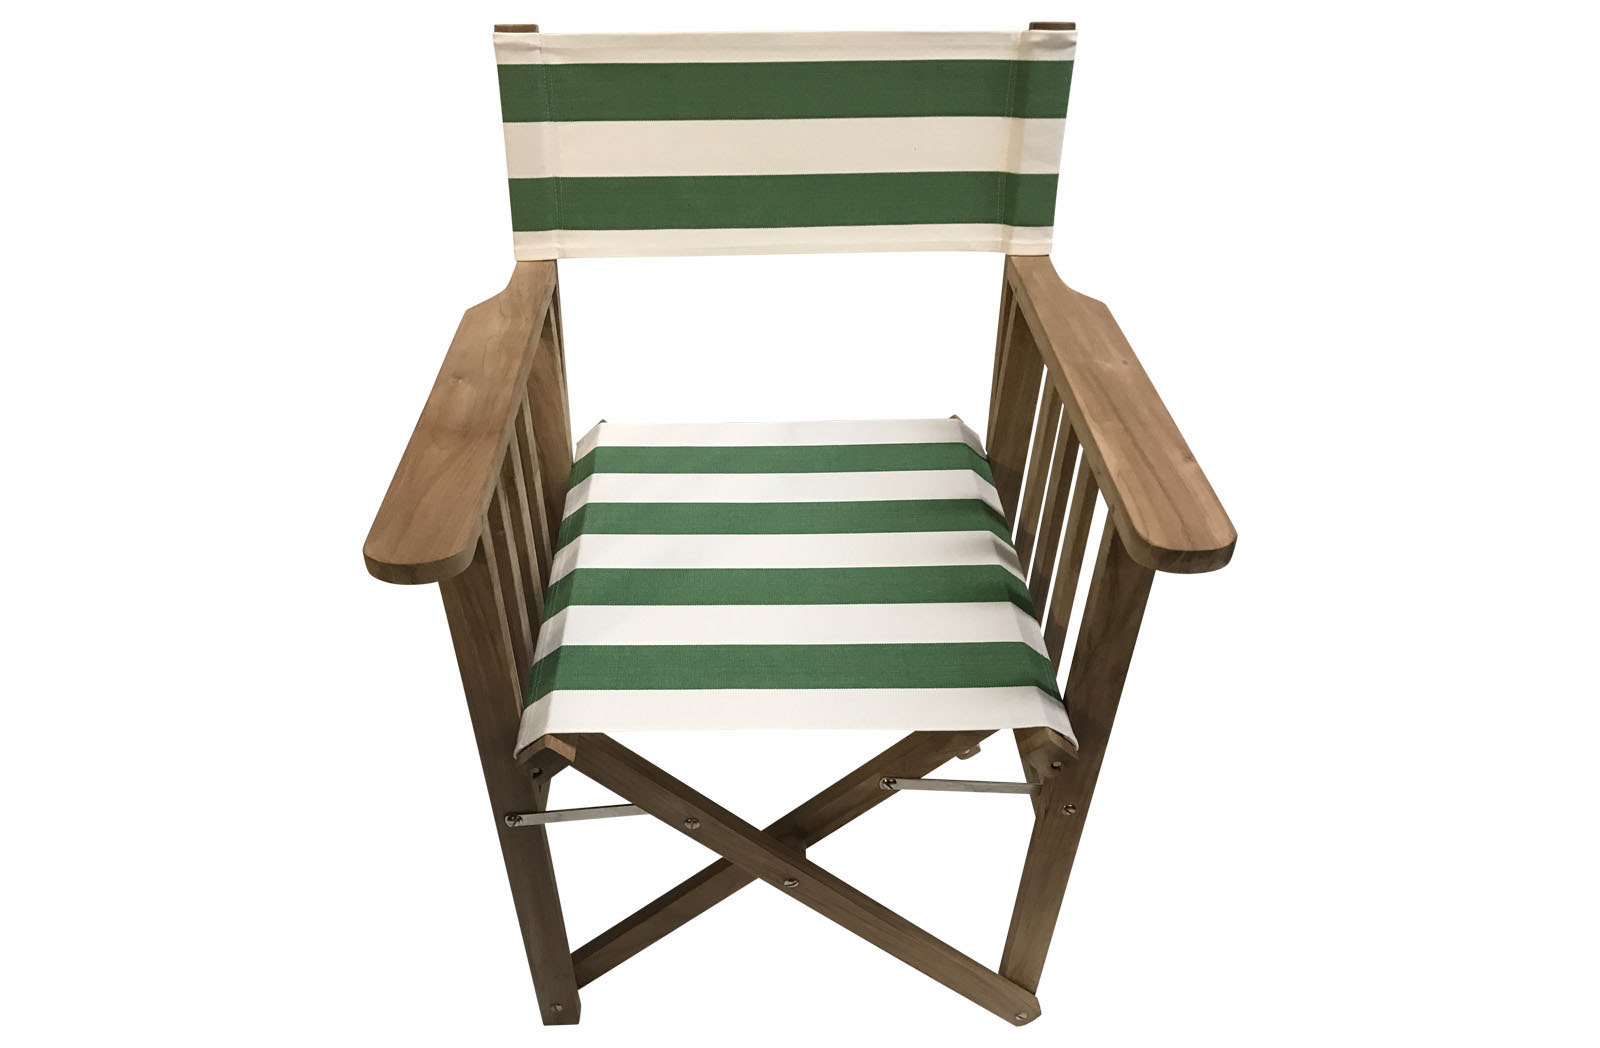 Green And White Directors Chair Covers The Stripes